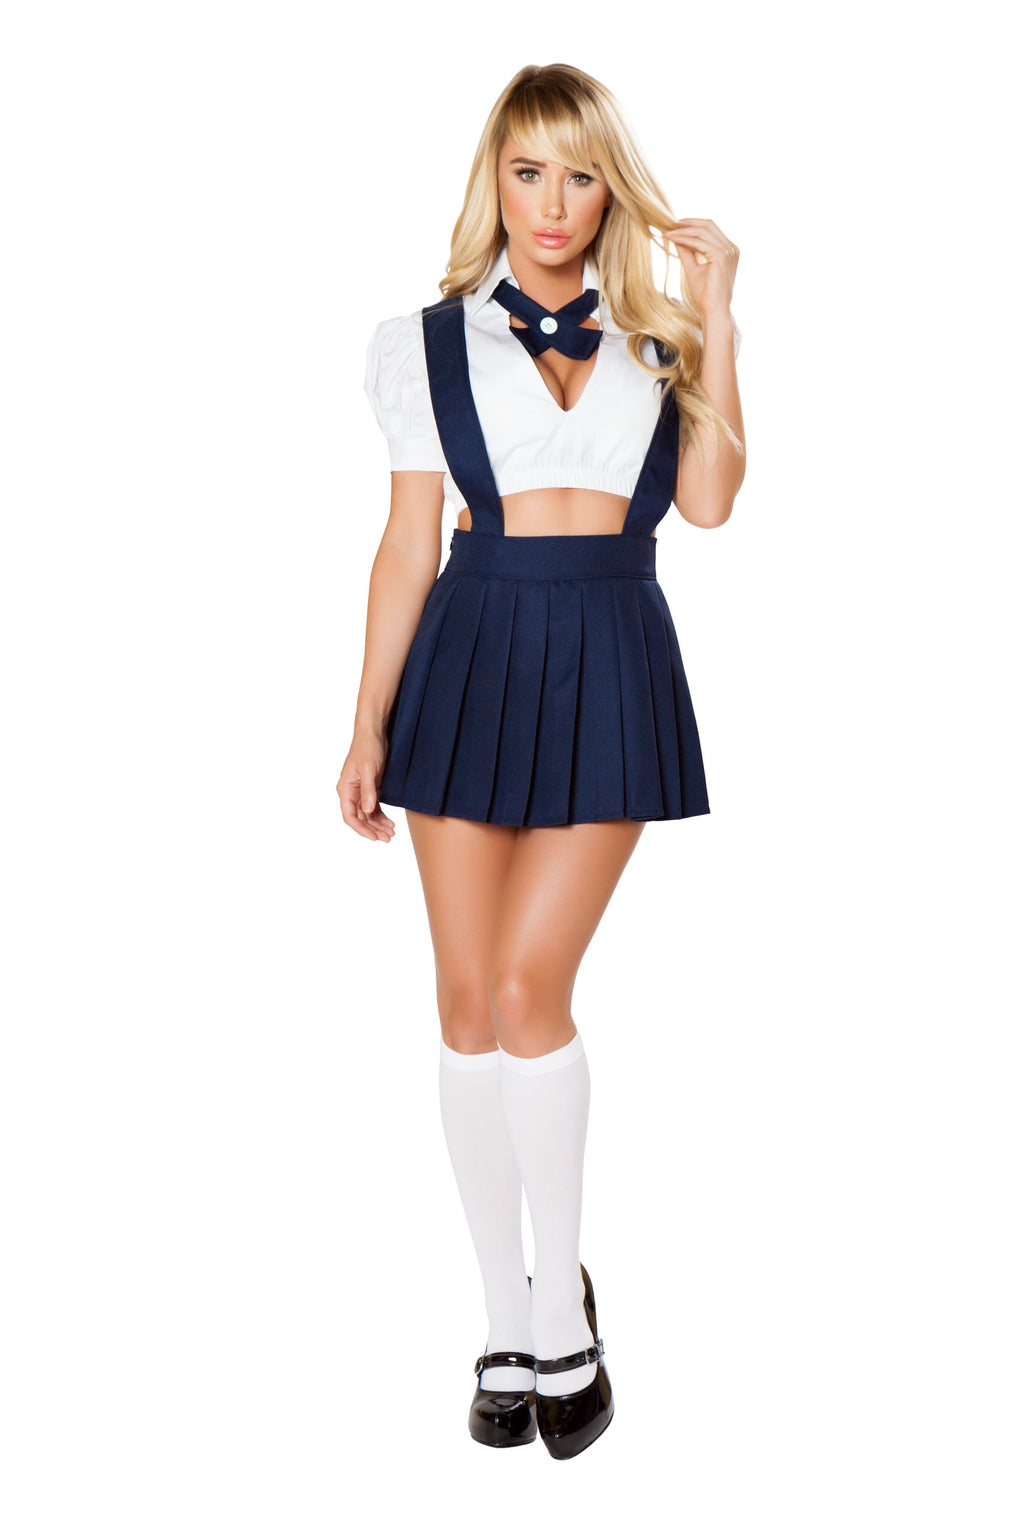 3-Piece-School-Girl-White-Top-&-Navy-Suspender-Pleated-Skirt-Party-Costume